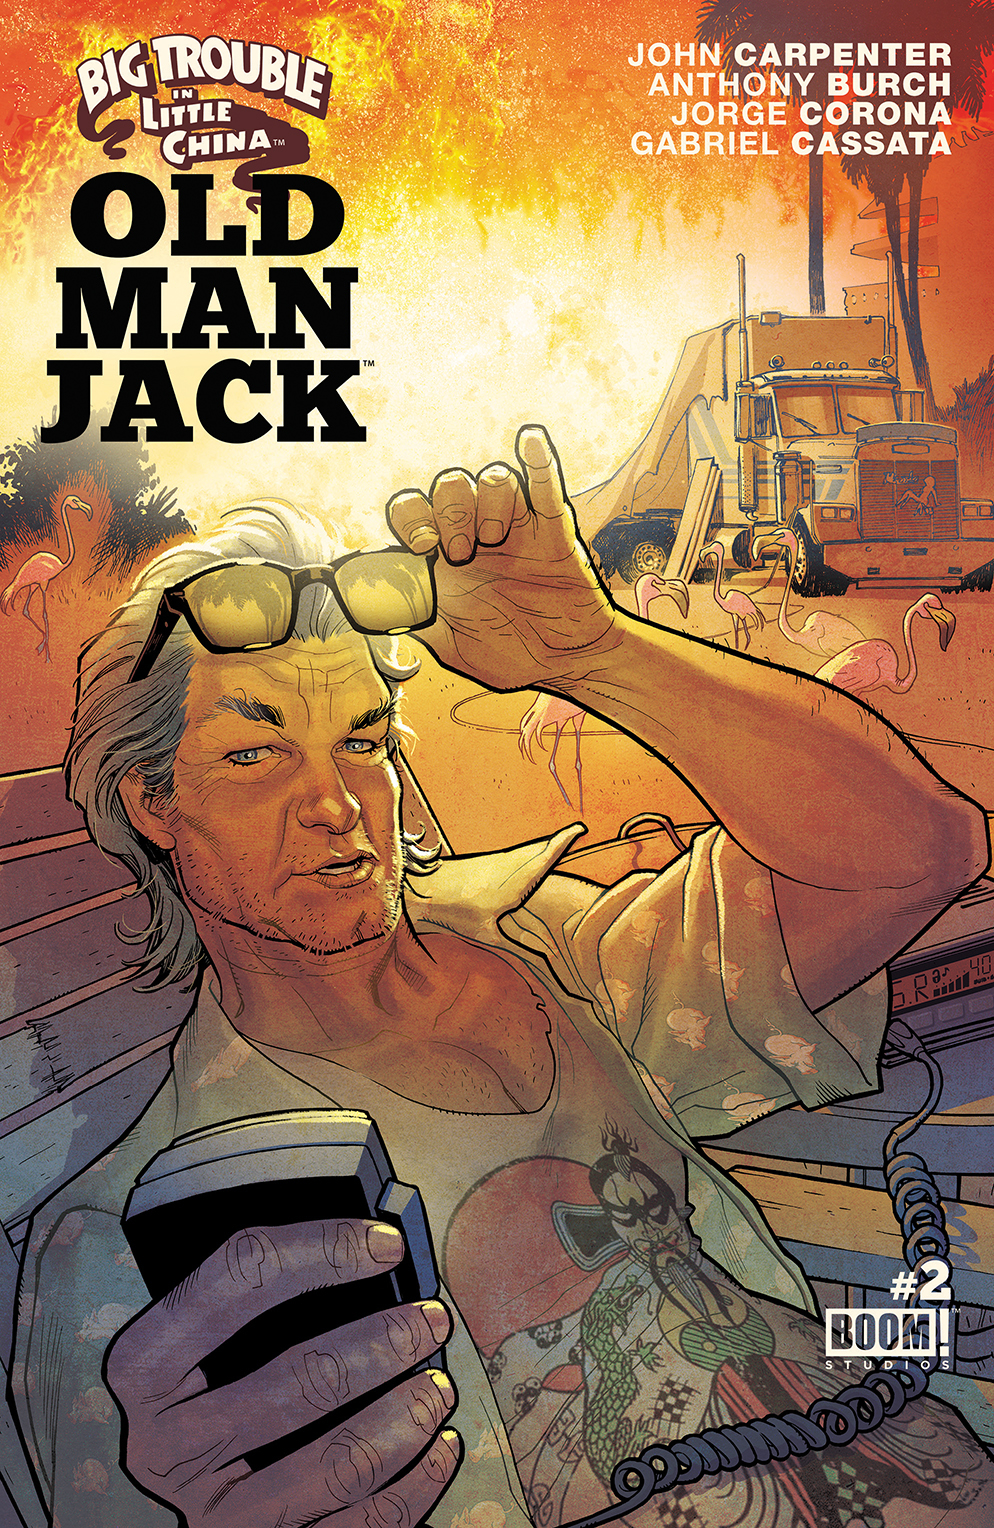 BIG TROUBLE IN LITTLE CHINA OLD MAN JACK #2 MAIN & MIX